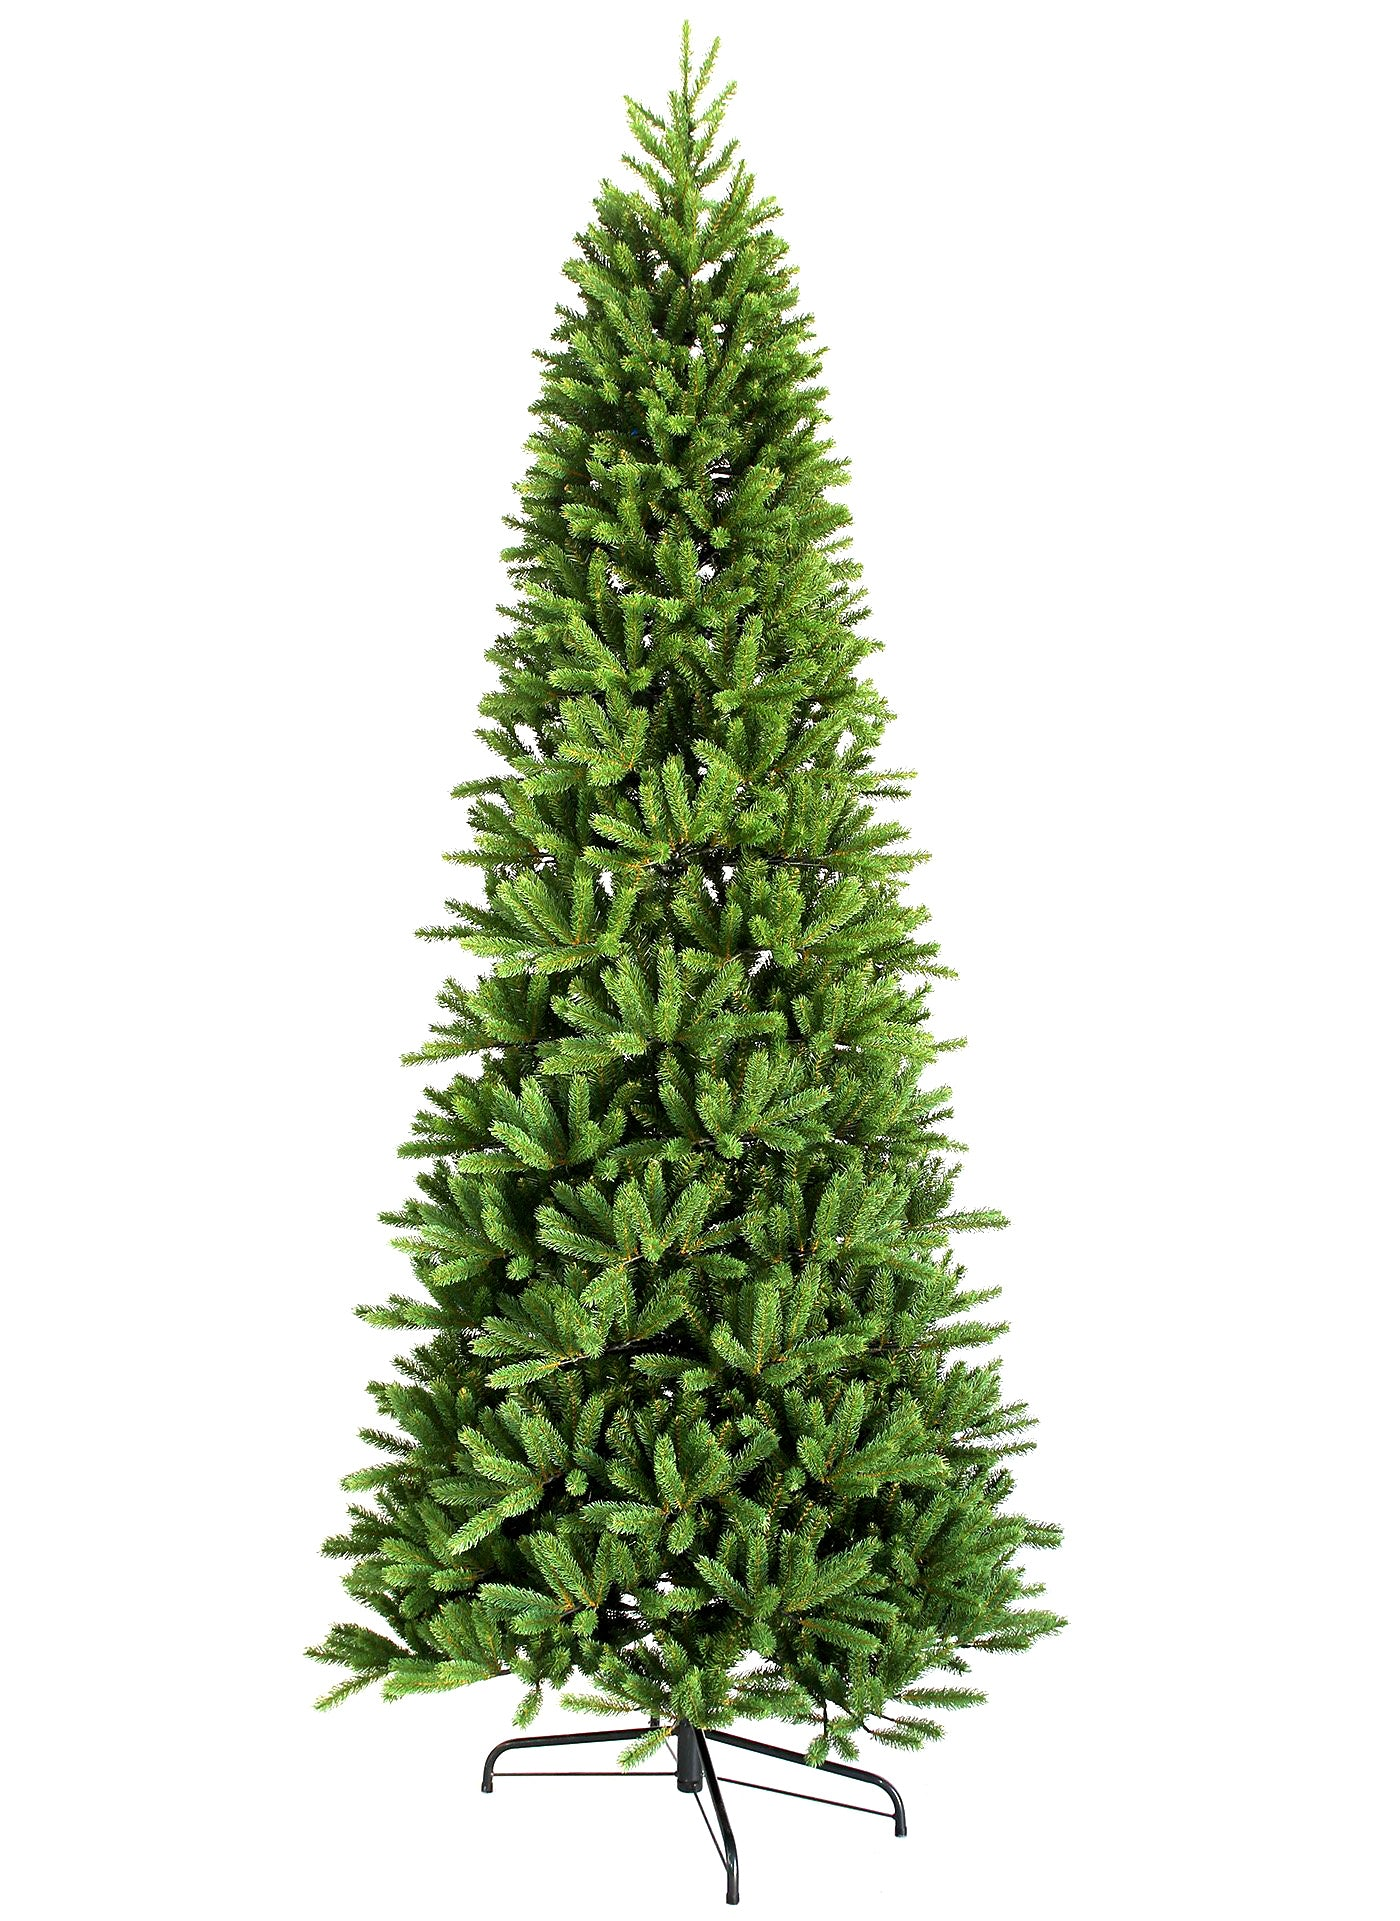 12' King Fraser Fir Slim Artificial Christmas Tree with 1250 Warm White LED Lights